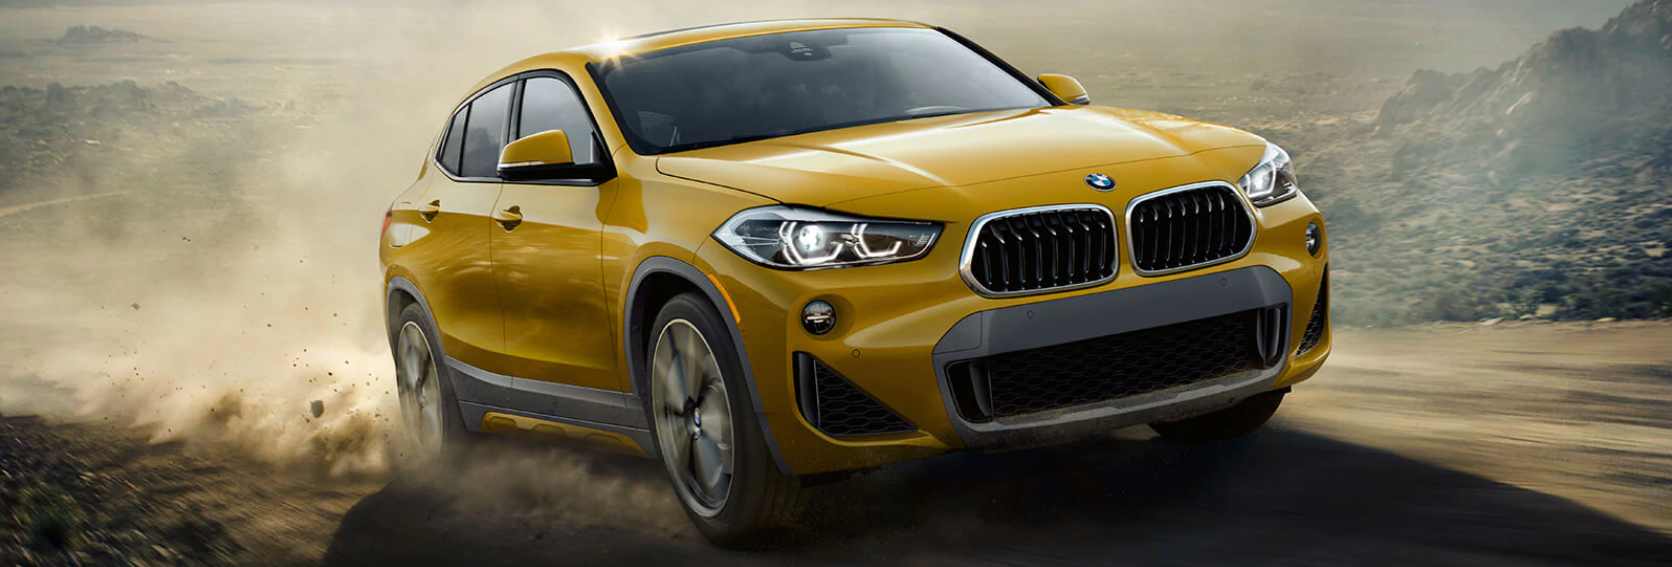 New BMW X2 Model Review | The BMW Store